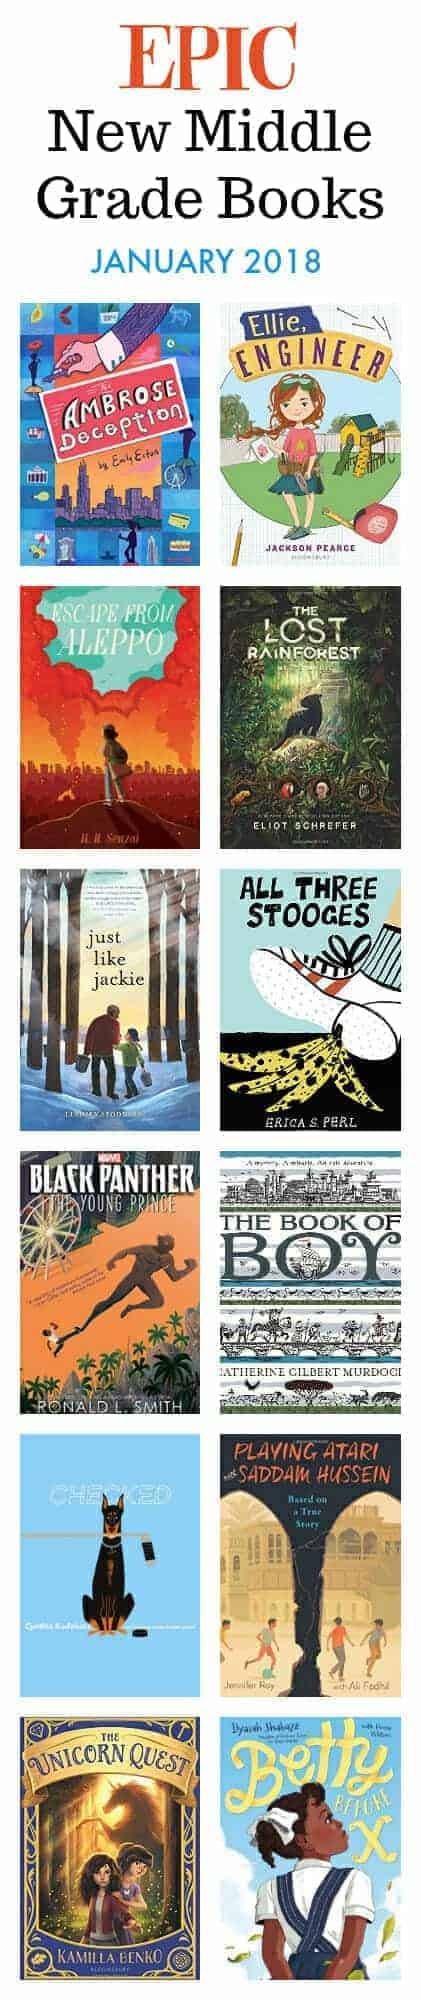 epic new middle grade chapter books fro readers ages 8 to 12, January 2018 #kids #books #childrensbooks